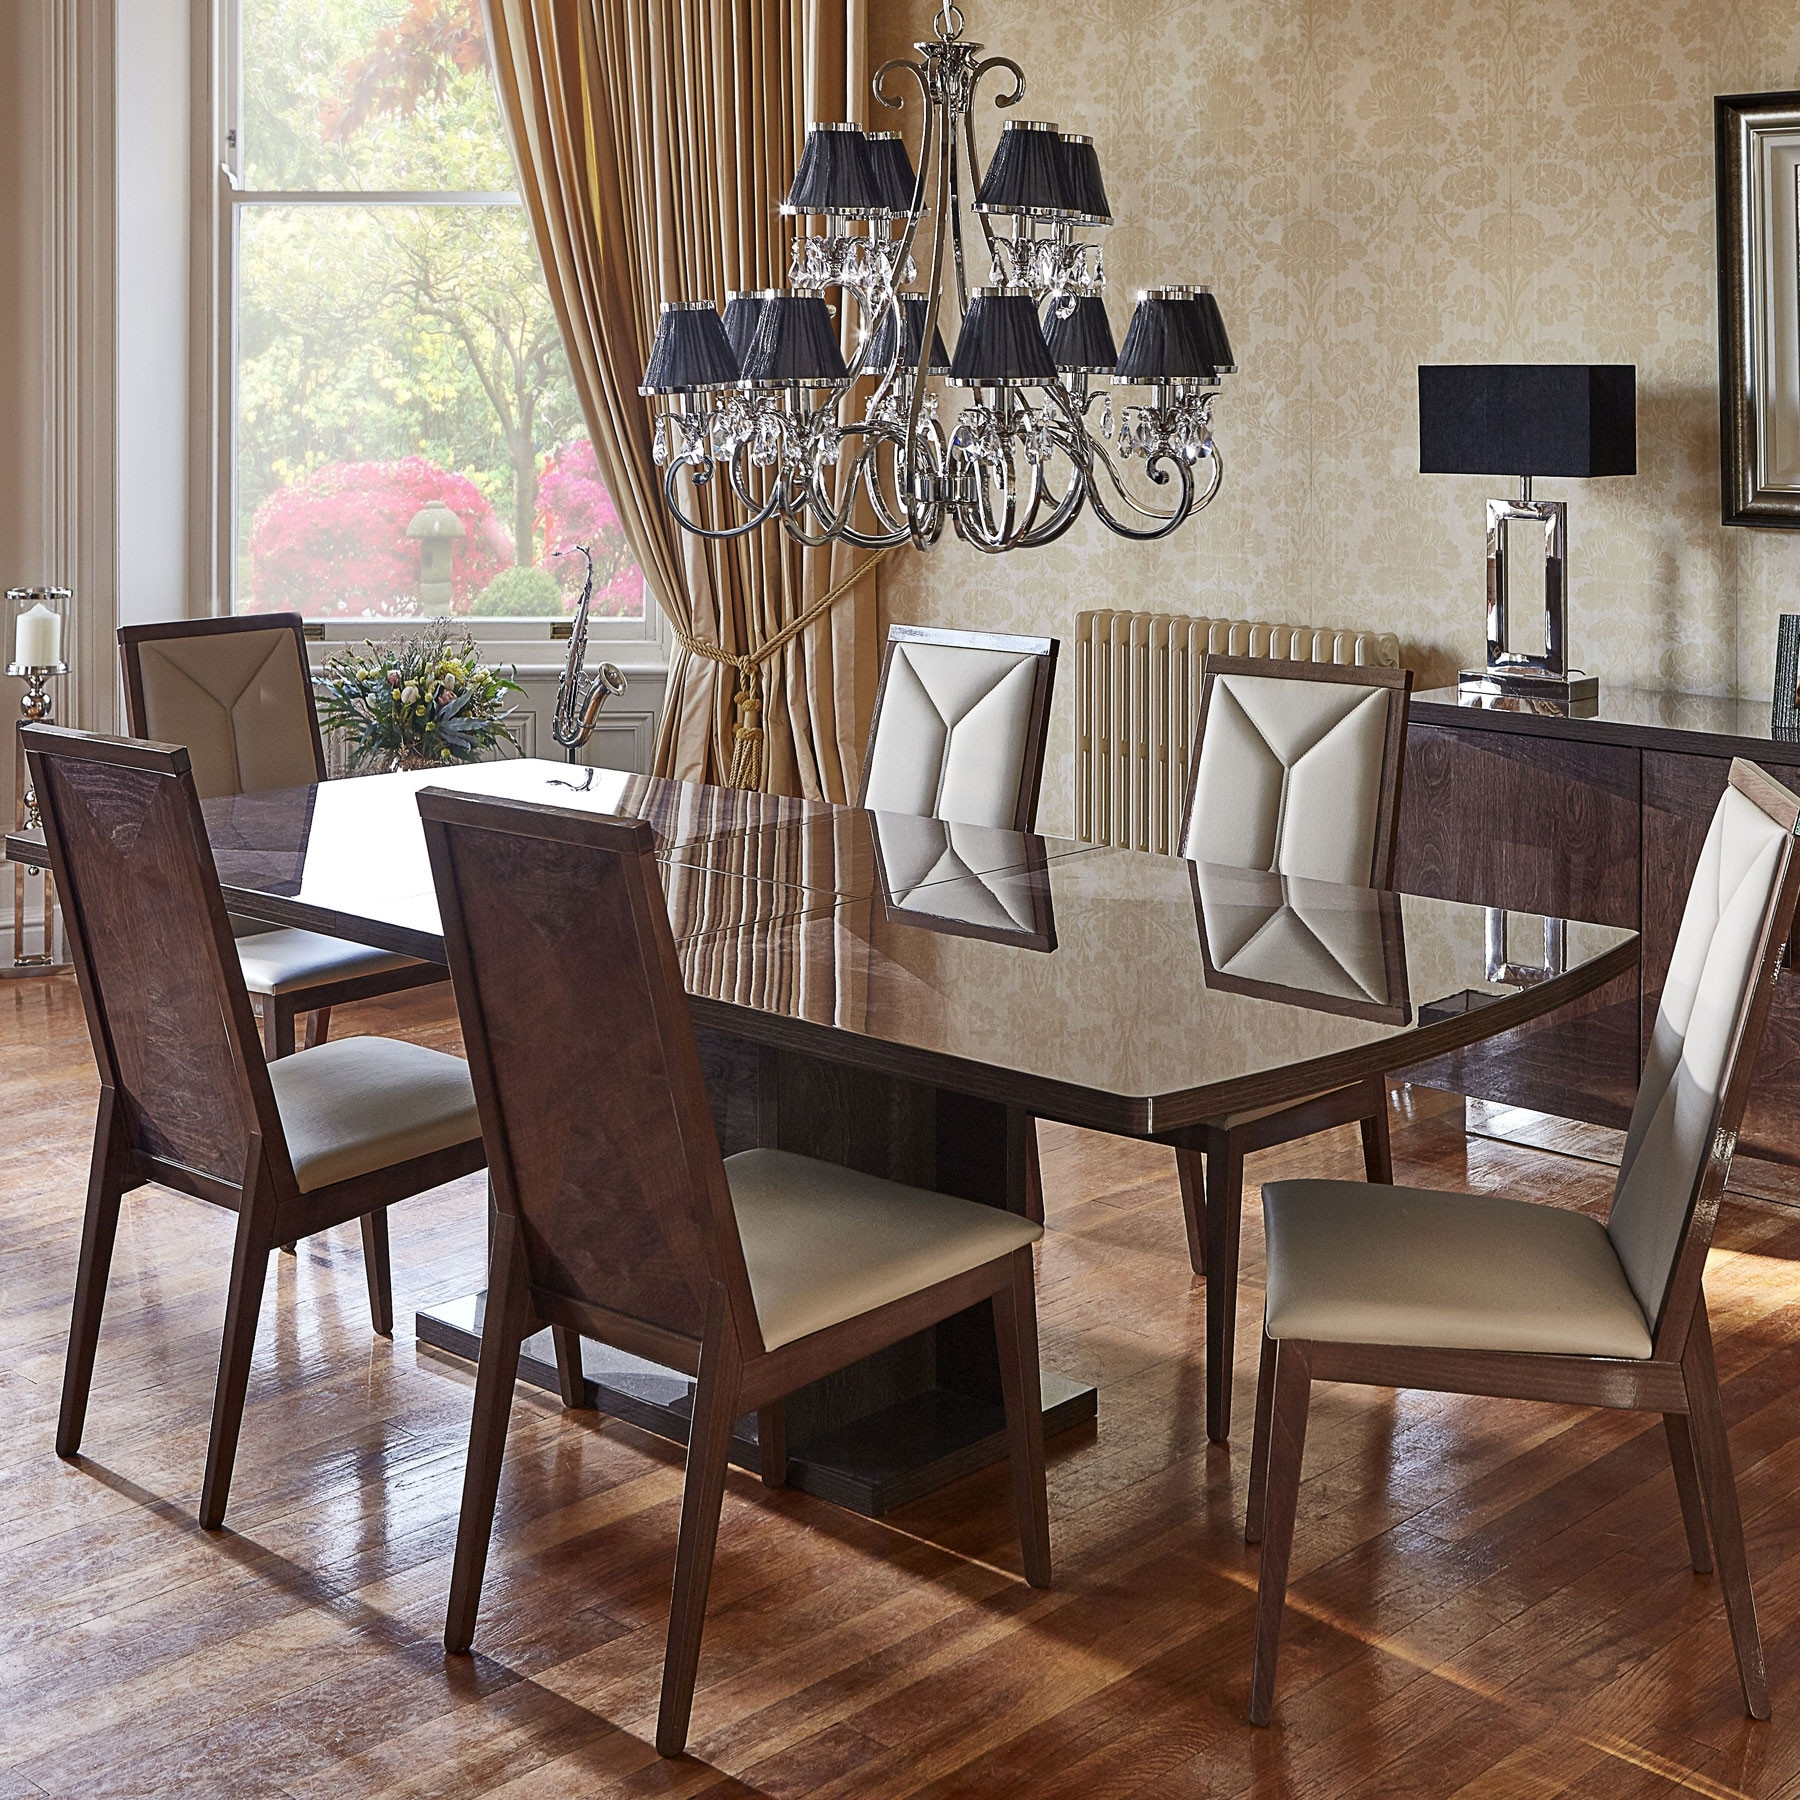 Favorite Vogue High Gloss Extending Dining Table & 6 Chairs Throughout Extending Gloss Dining Tables (View 7 of 25)